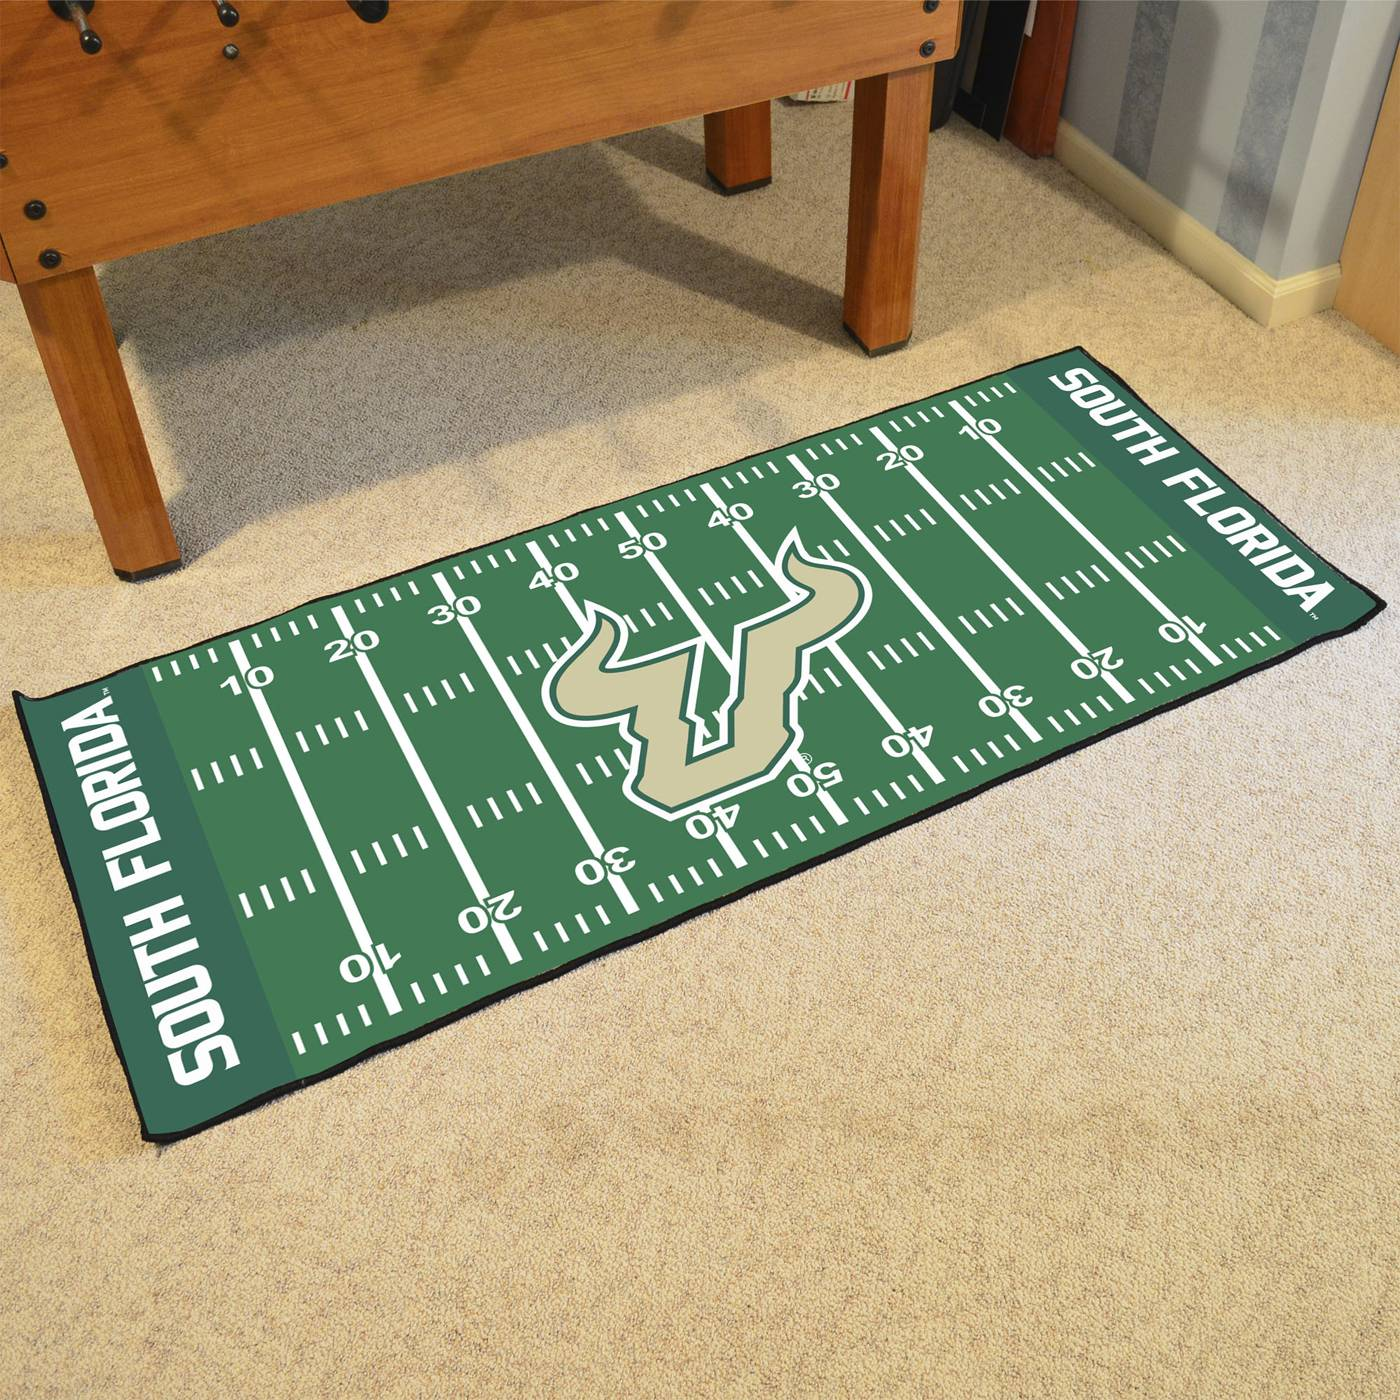 Nebraska Cornhuskers Blackshirts Football Field Runner Rug: South Florida Bulls Football Field Runner Rug